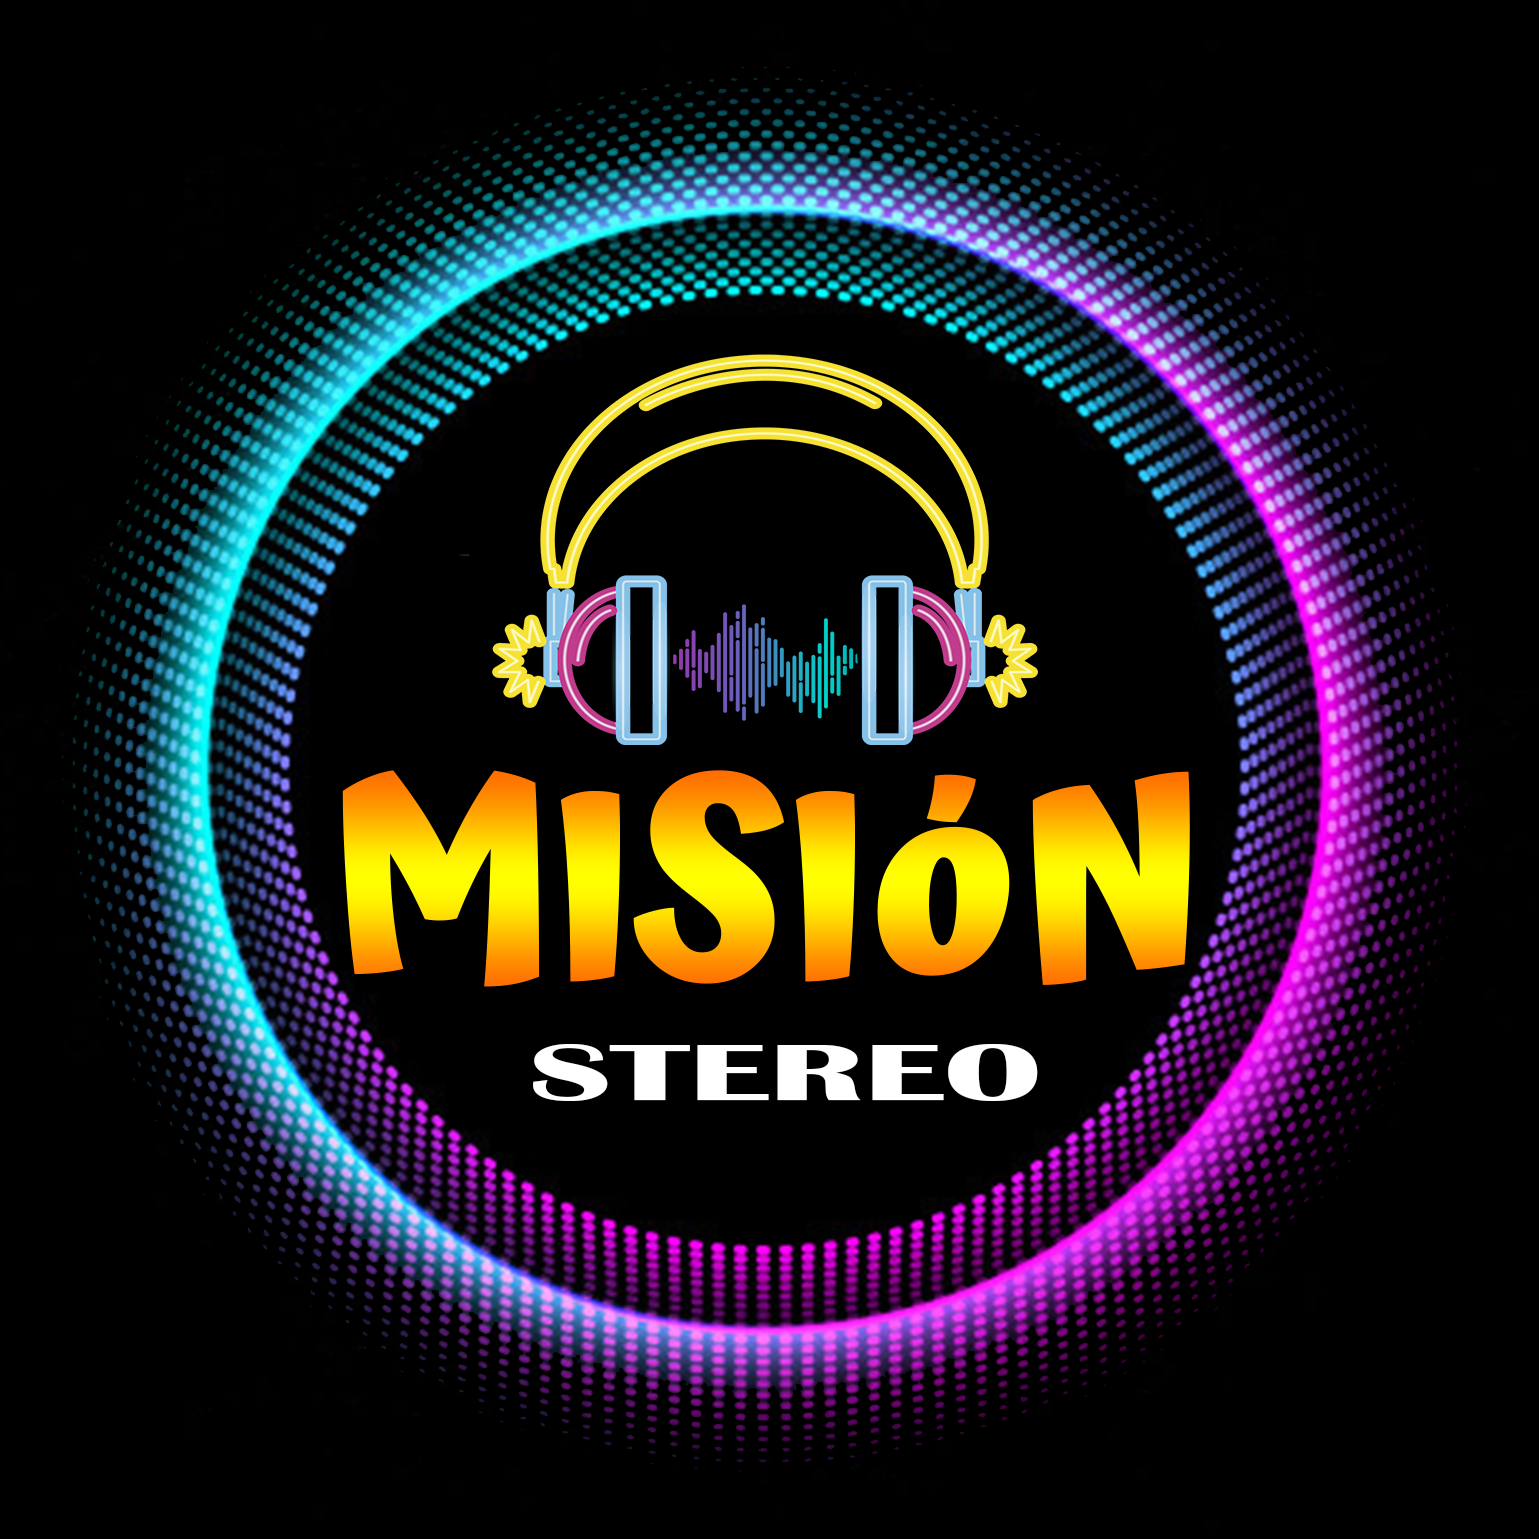 Mision Stereo